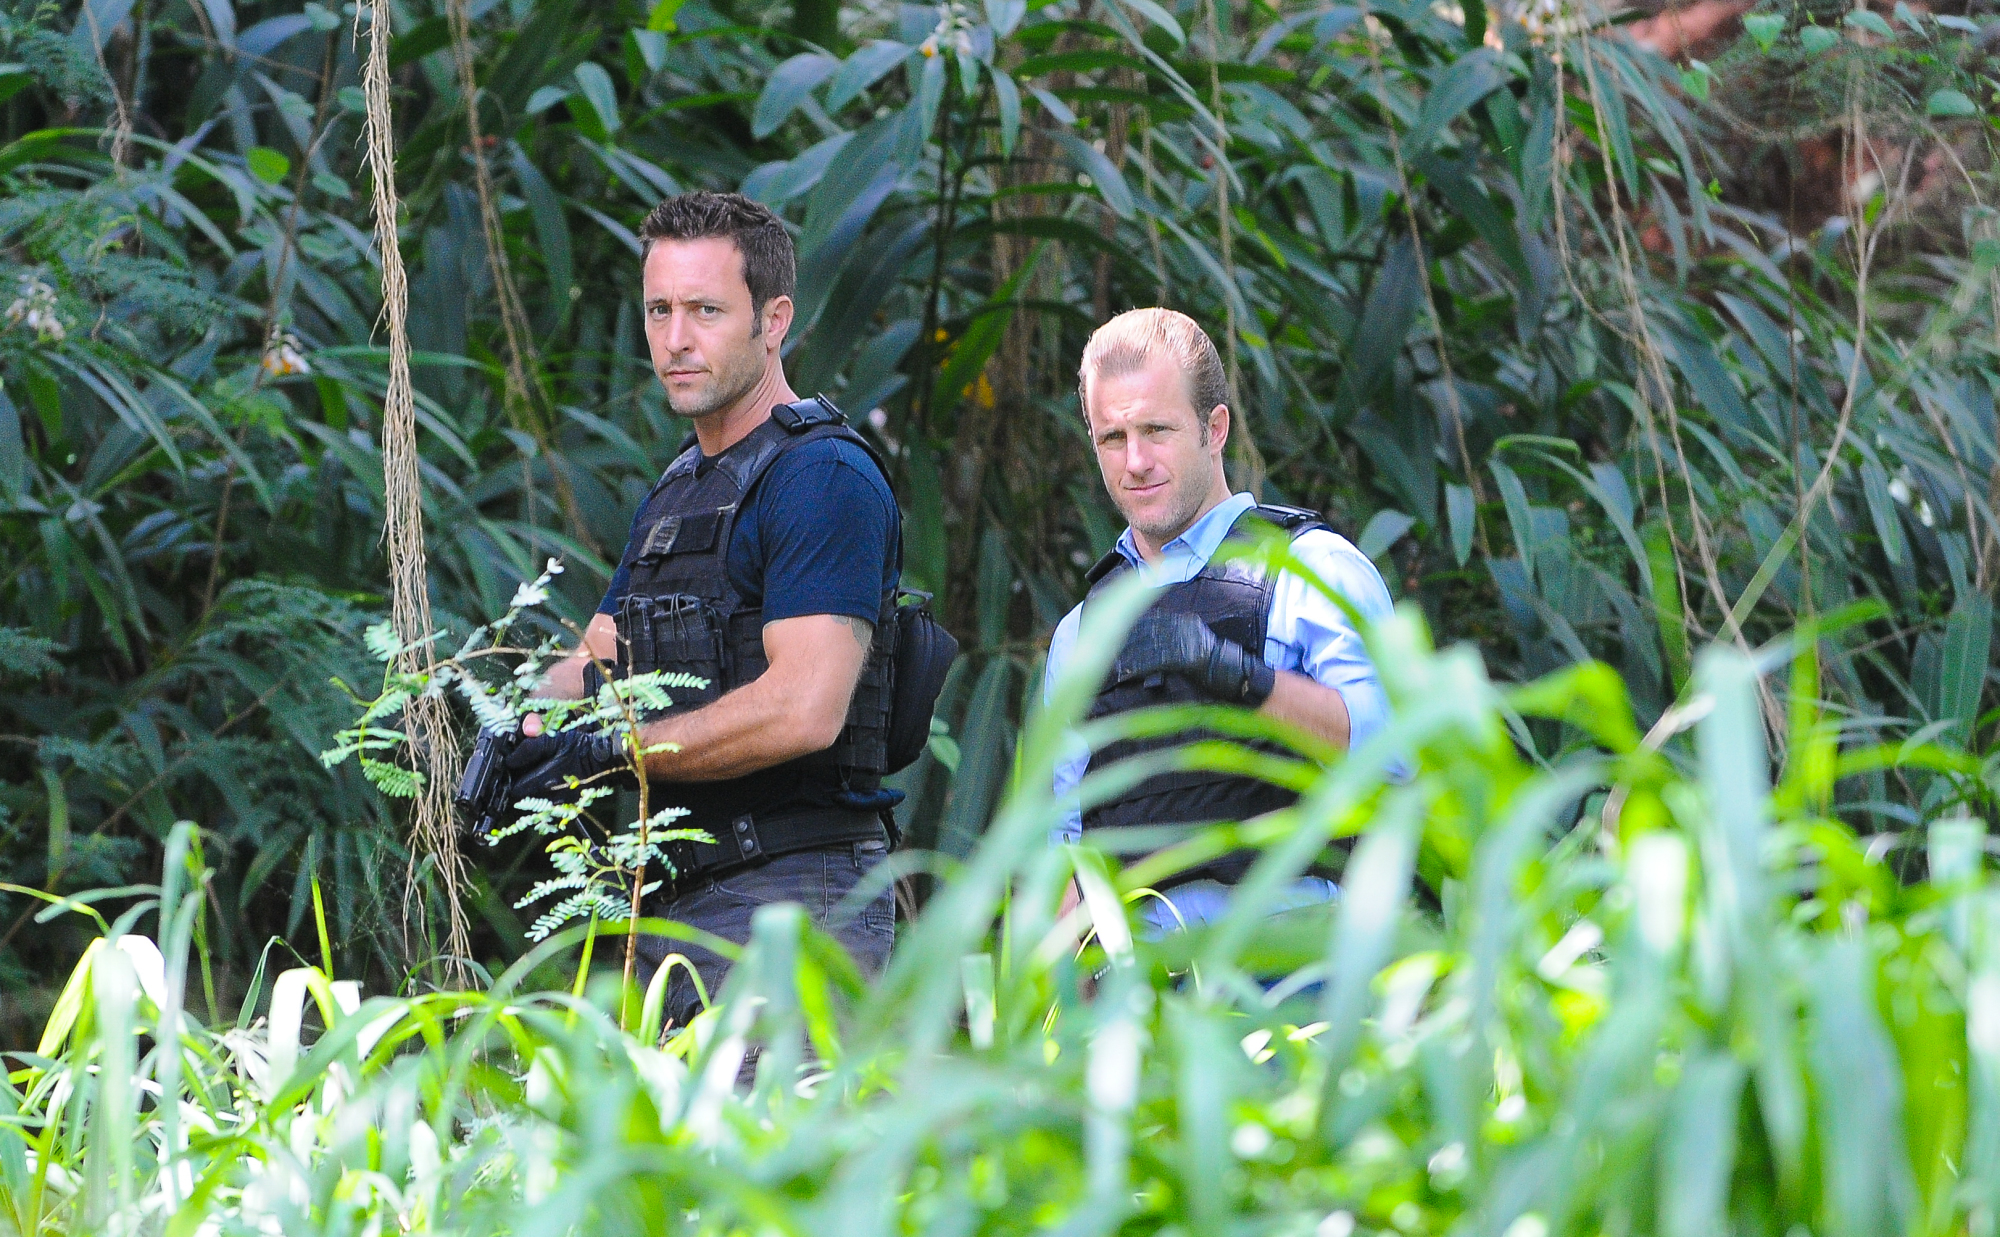 Alex O'Loughlin as Steve McGarrett and Scott Caan as Danny